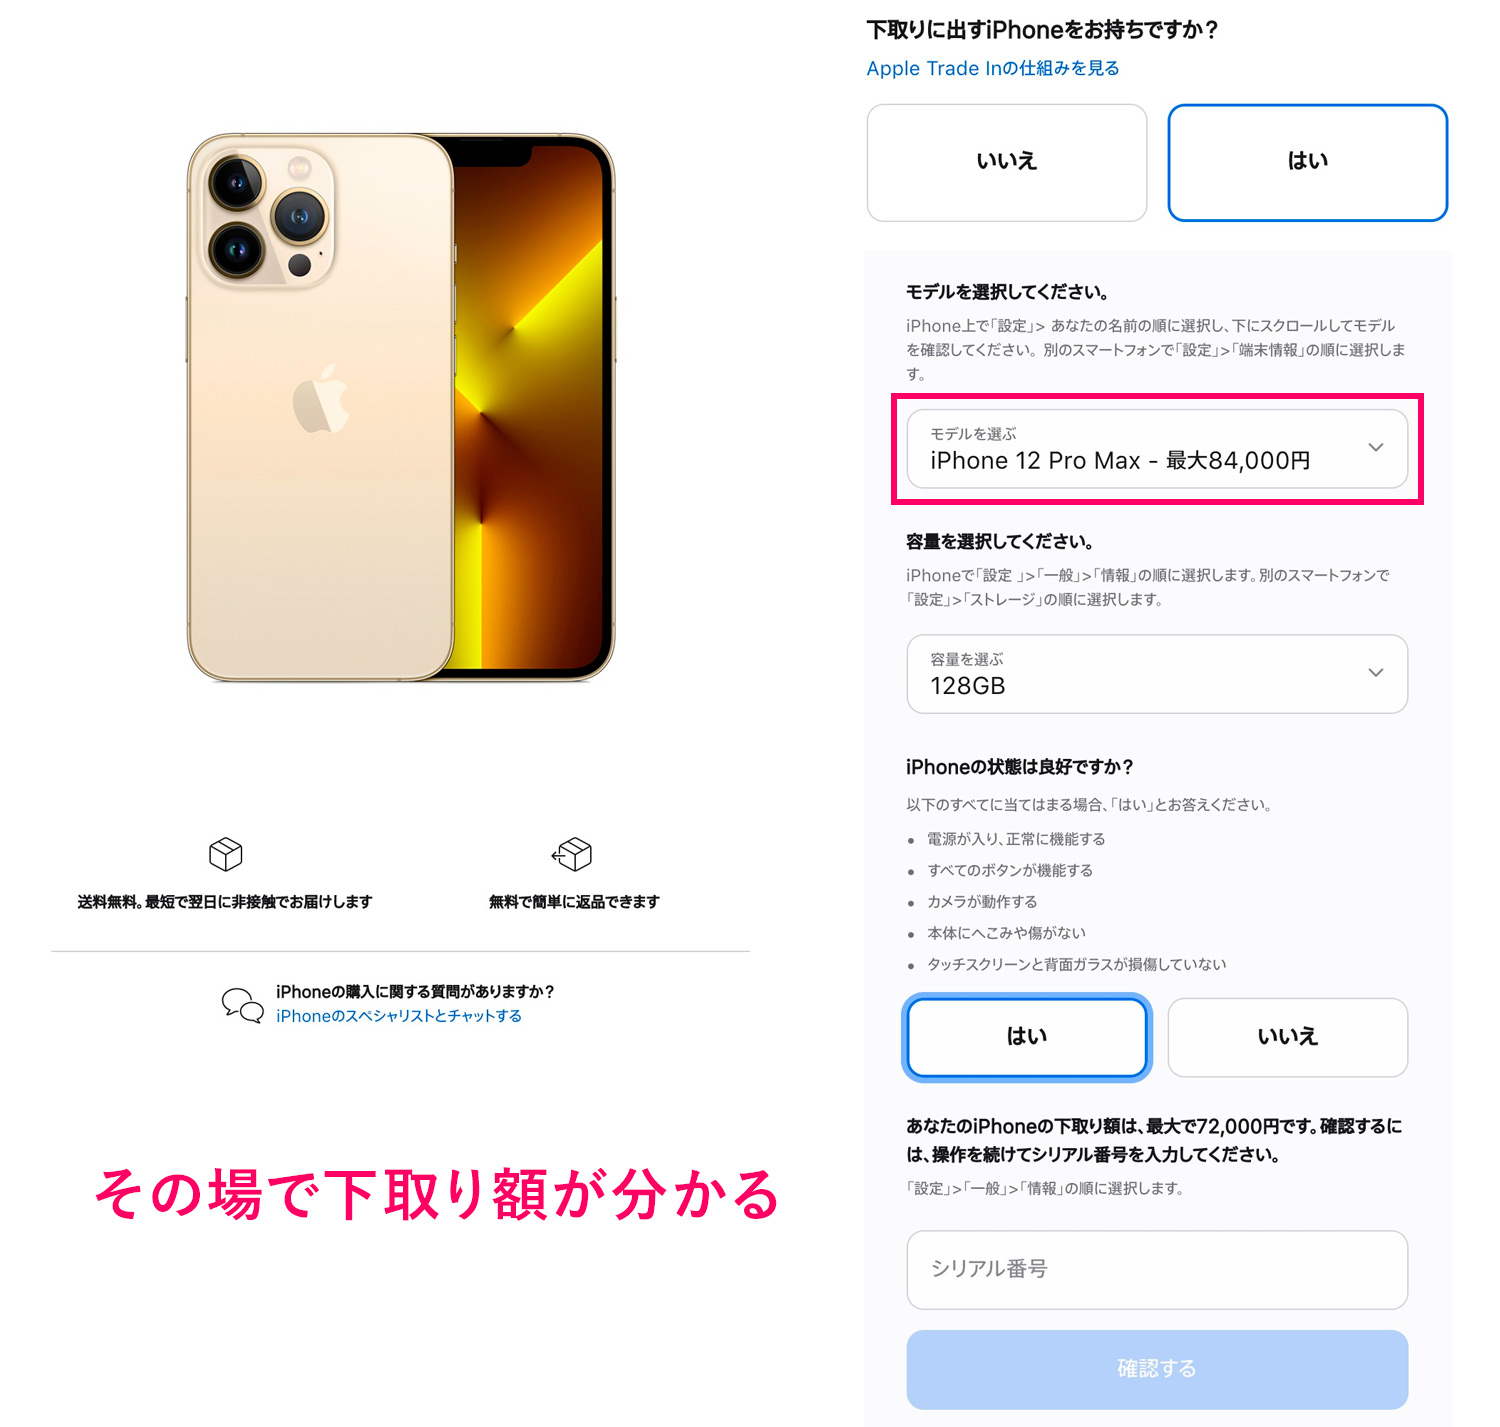 Apple Trade In 下取りサービス